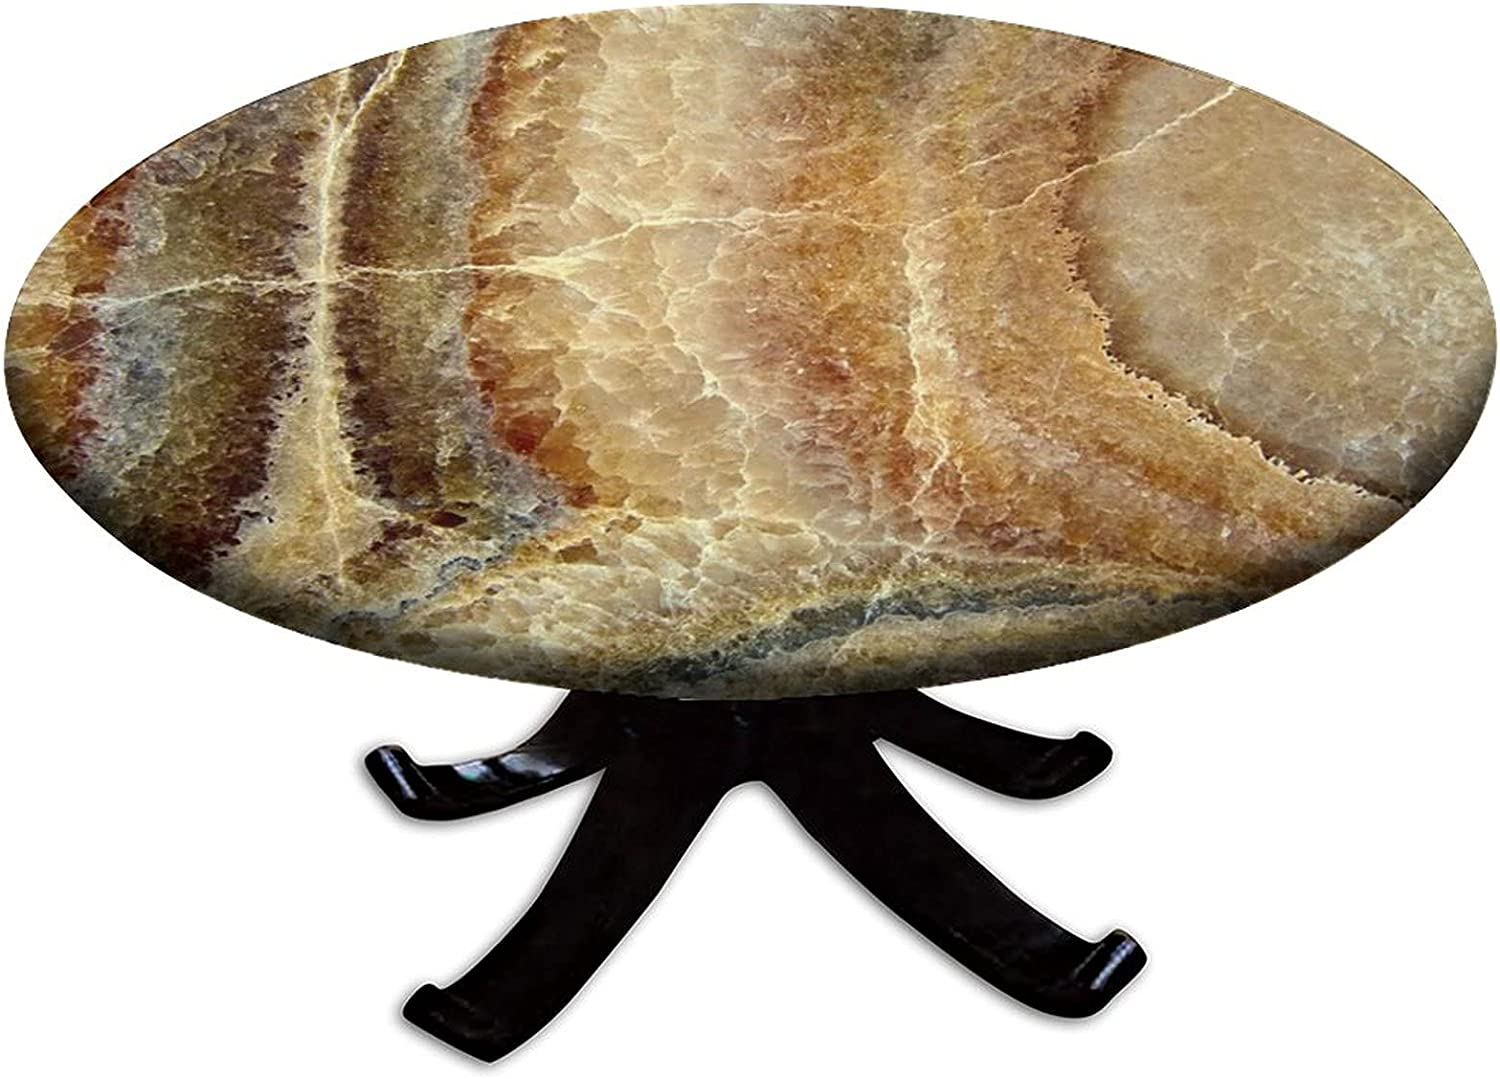 Marble New color Fitted Tablecloth Round Edge Co Manufacturer OFFicial shop Waterproof Table Elastic